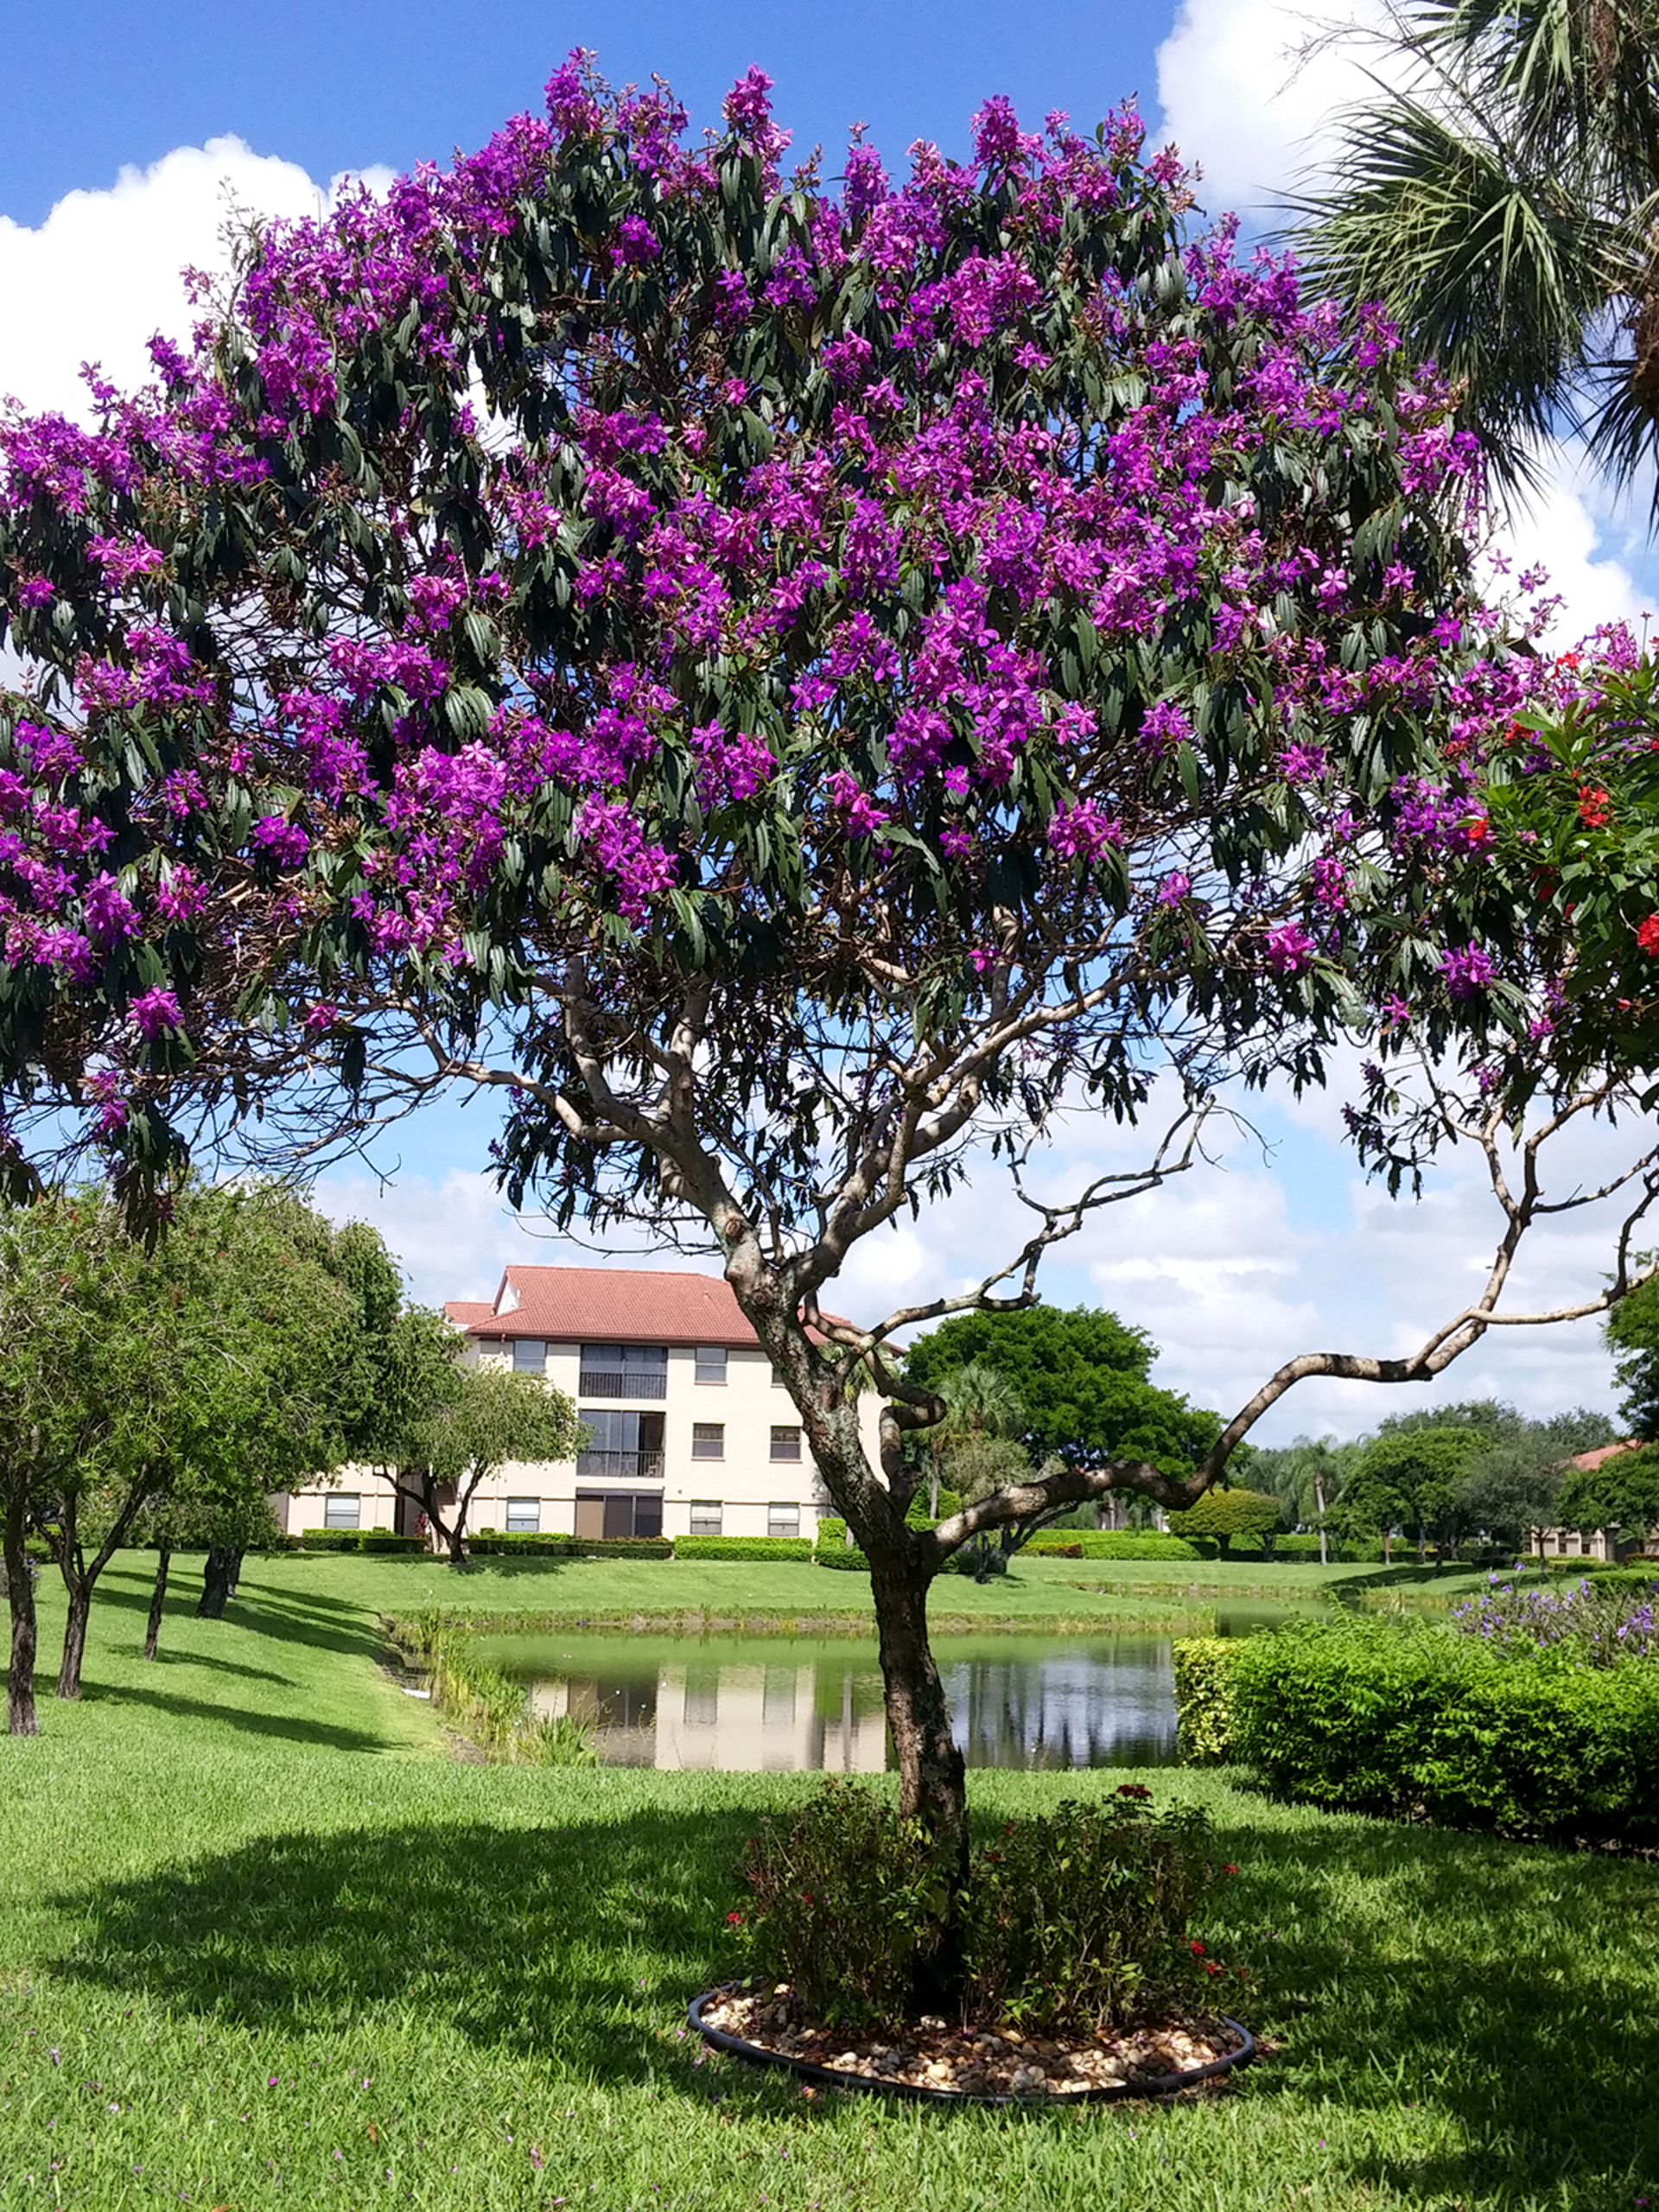 Flowering Tibouchina Tree With Purple Flowers In Florida